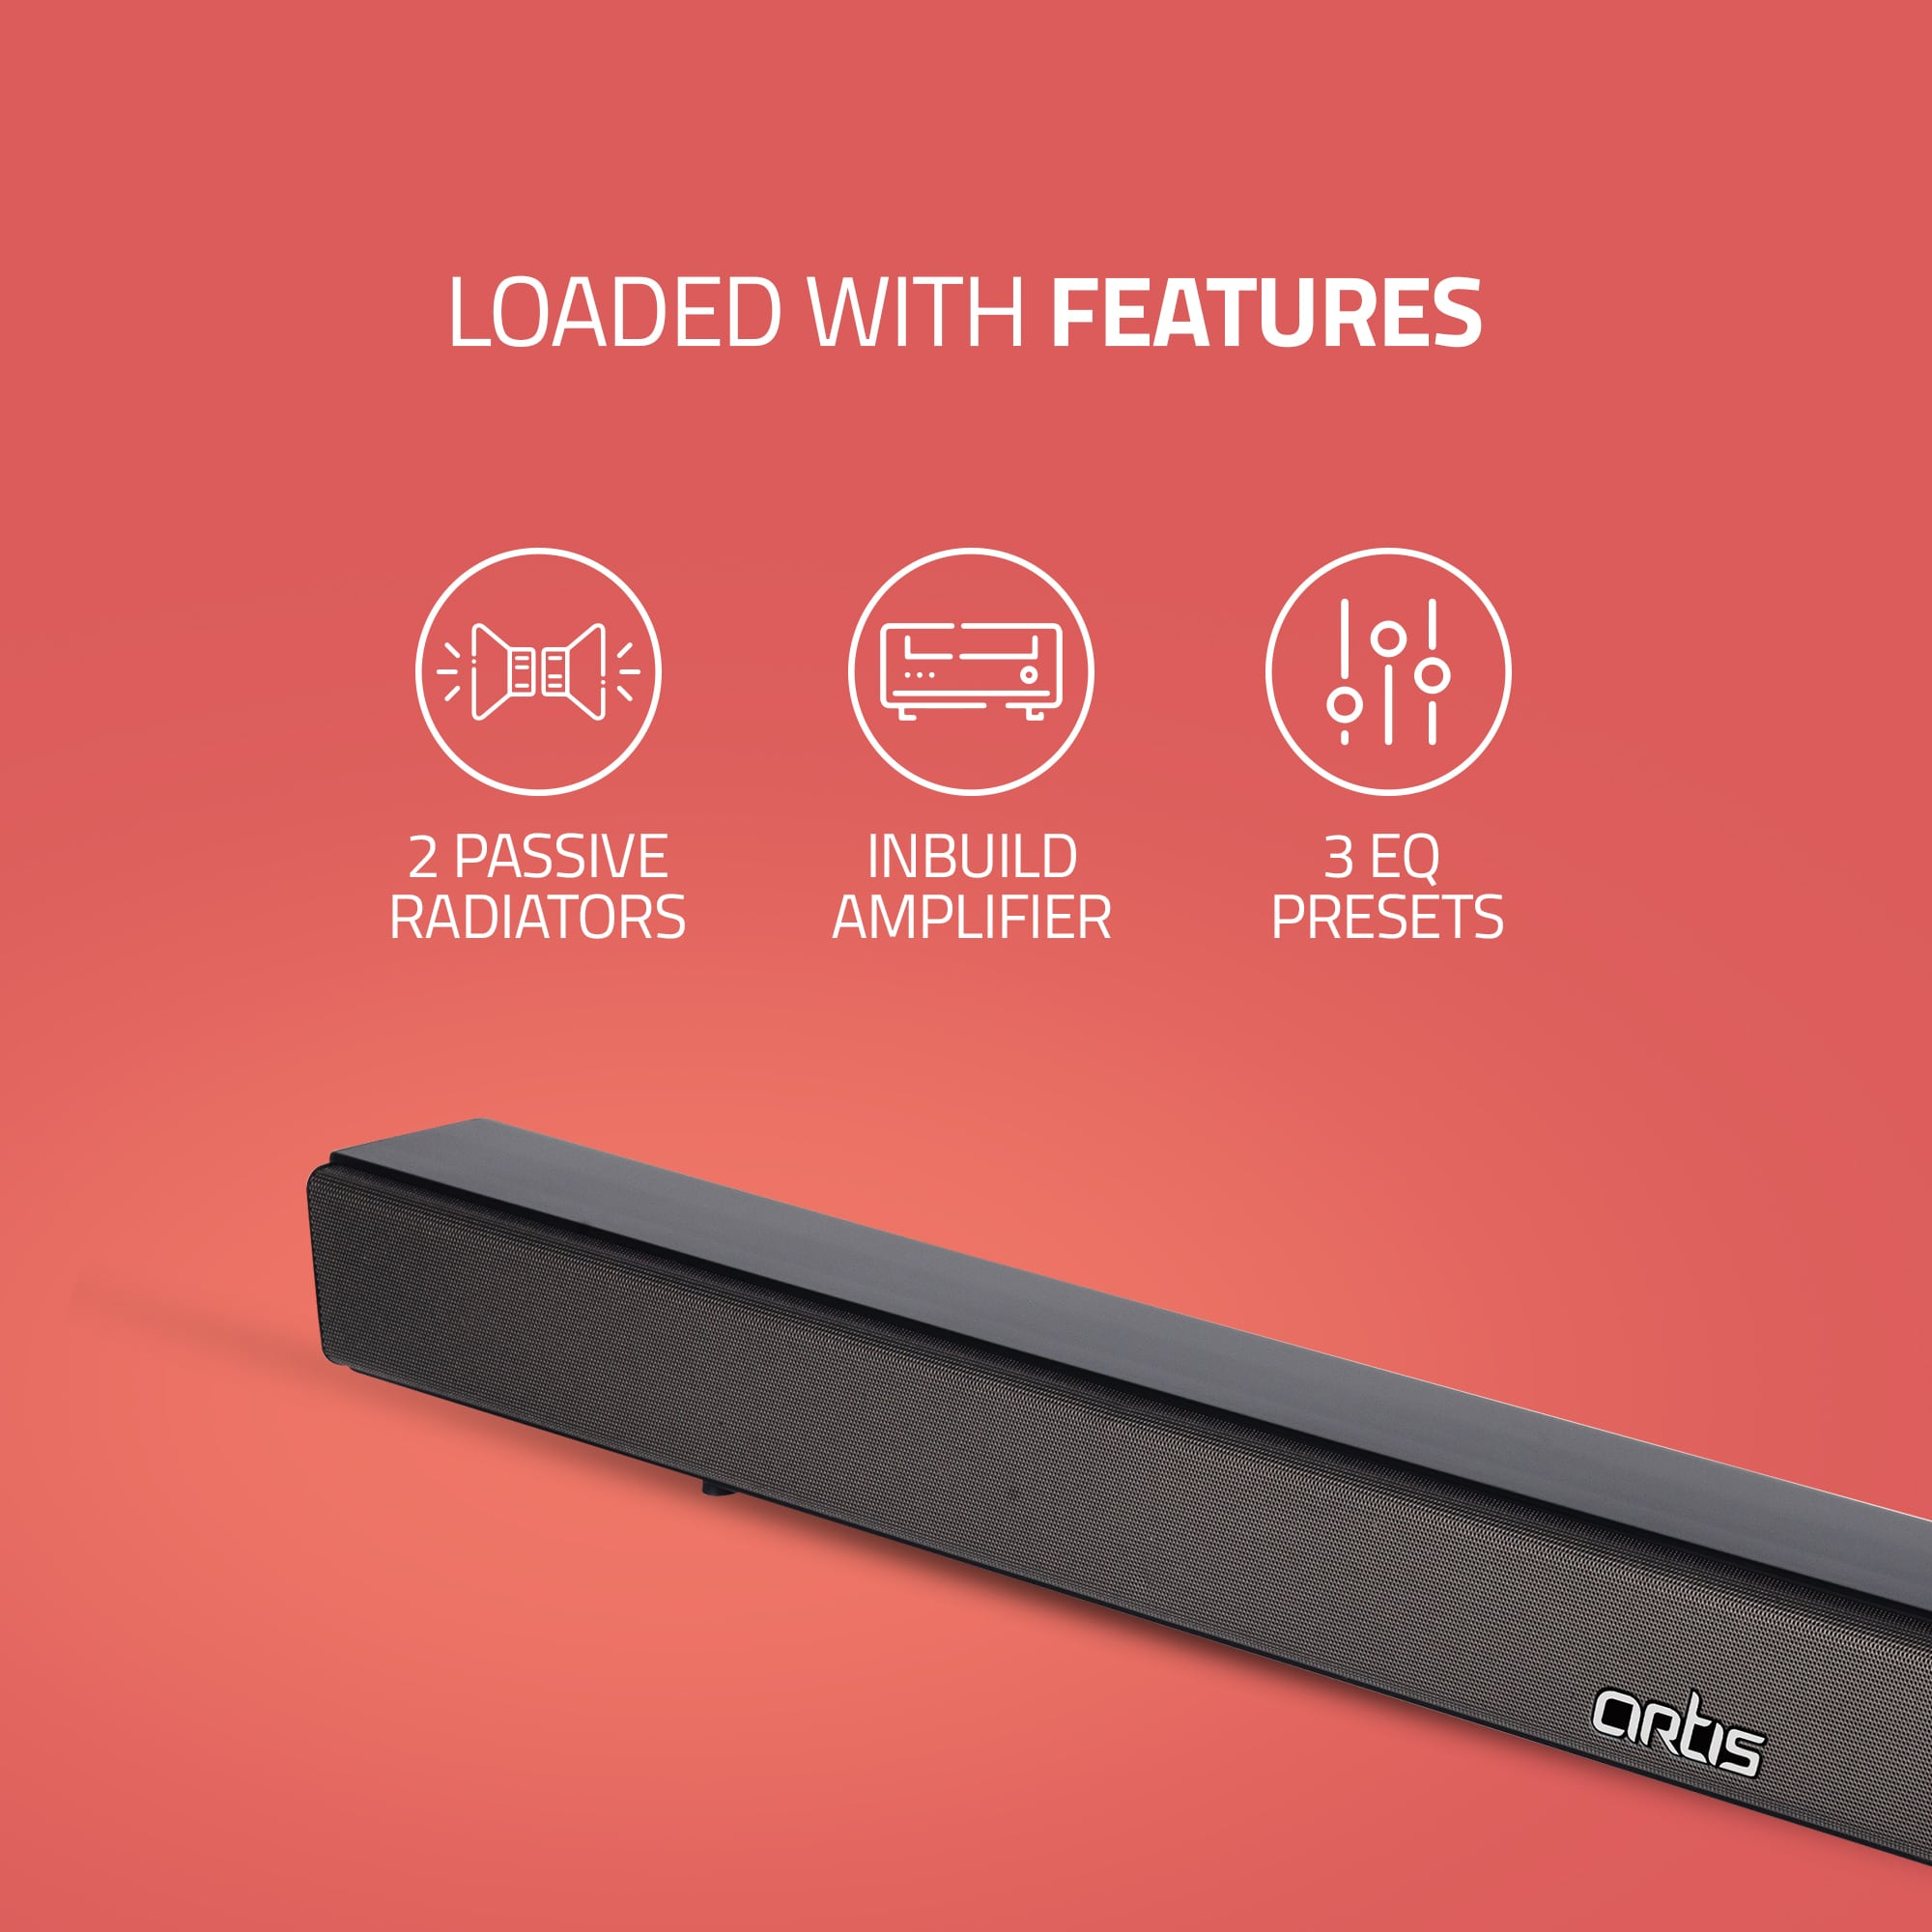 BT-X5 Artis Soundbar - Loaded with Features